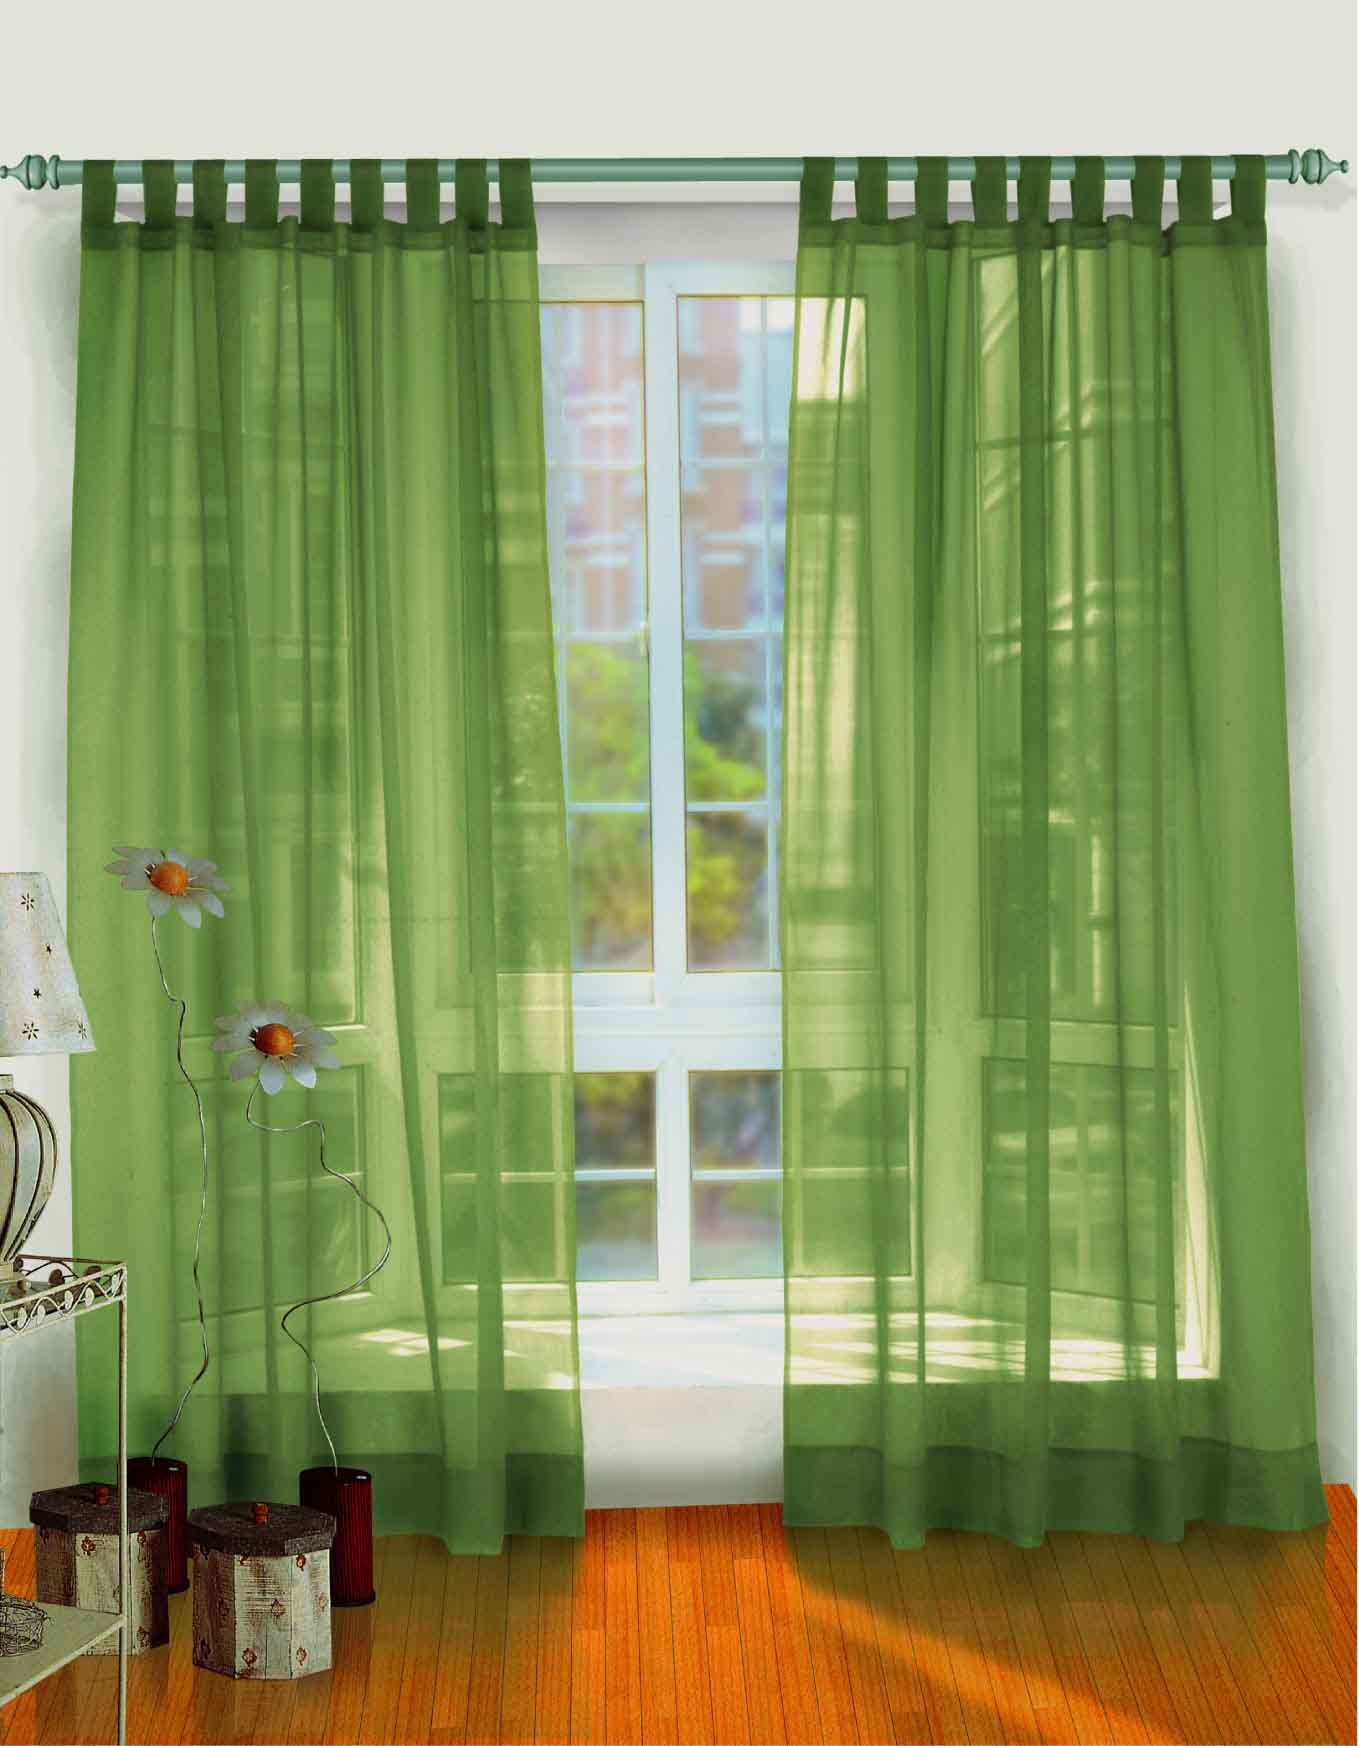 Enticing Bedroom Curtain For Beautiful Window Treatment Ideas (View 6 of 10)